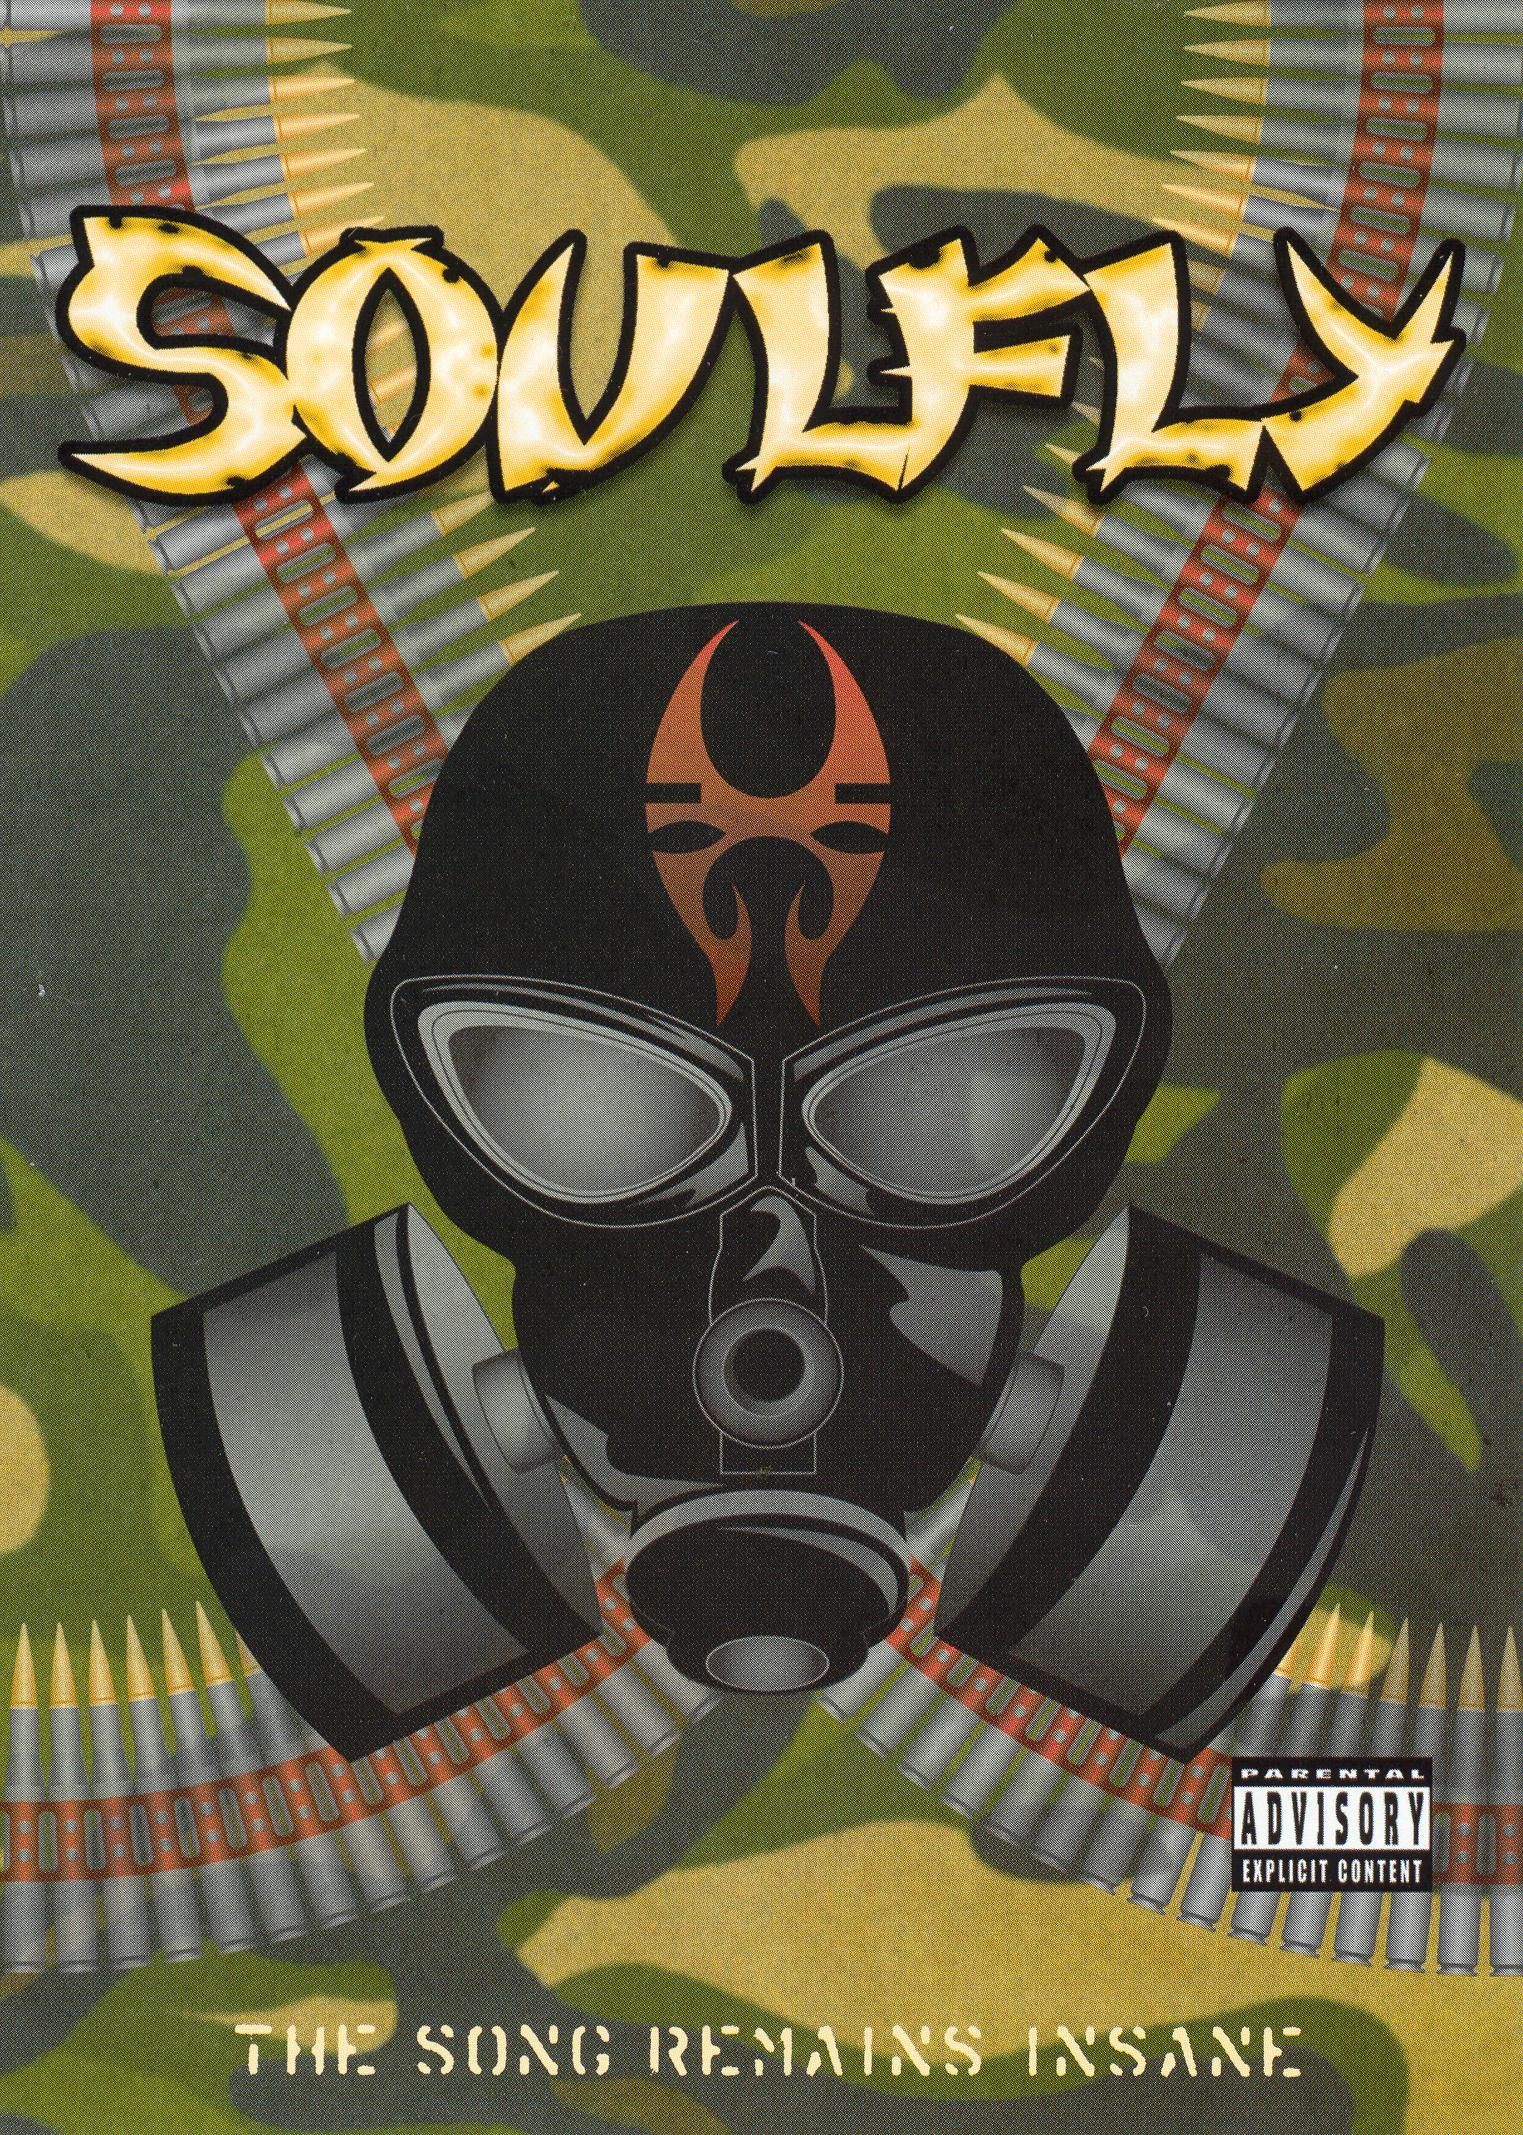 Soulfly: The Song Remains Insane